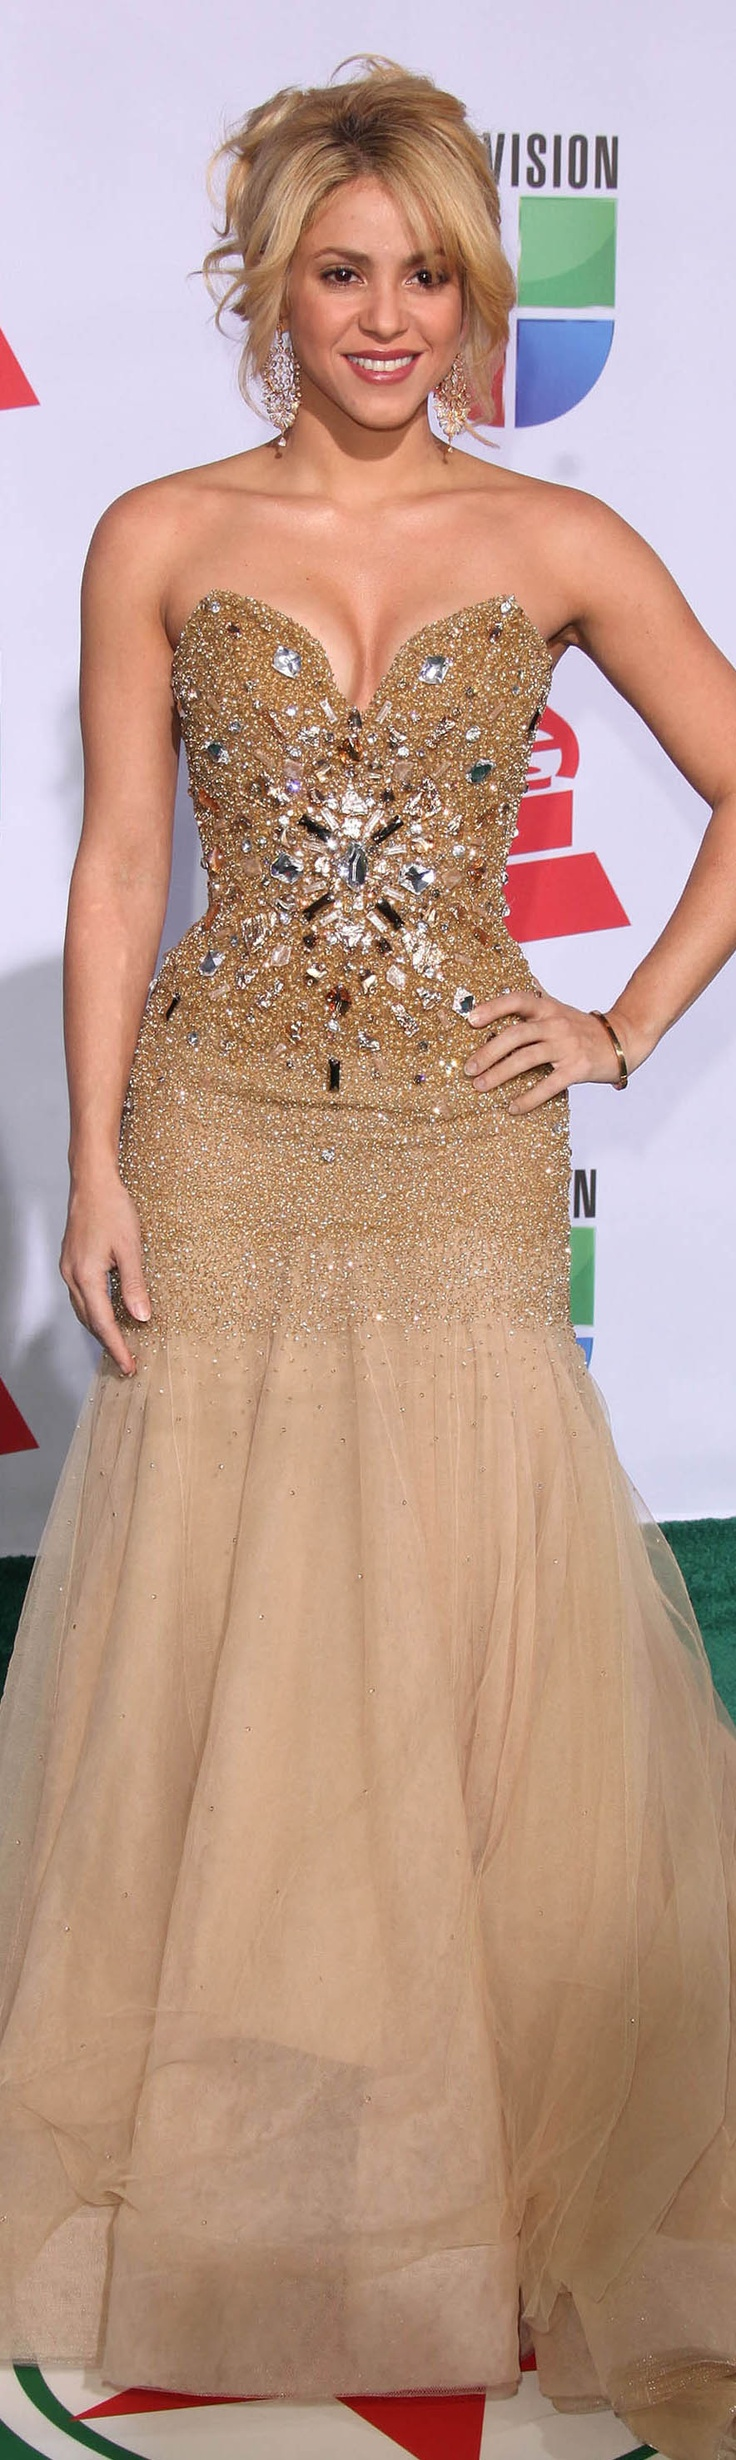 Shakira gold dress #strapless